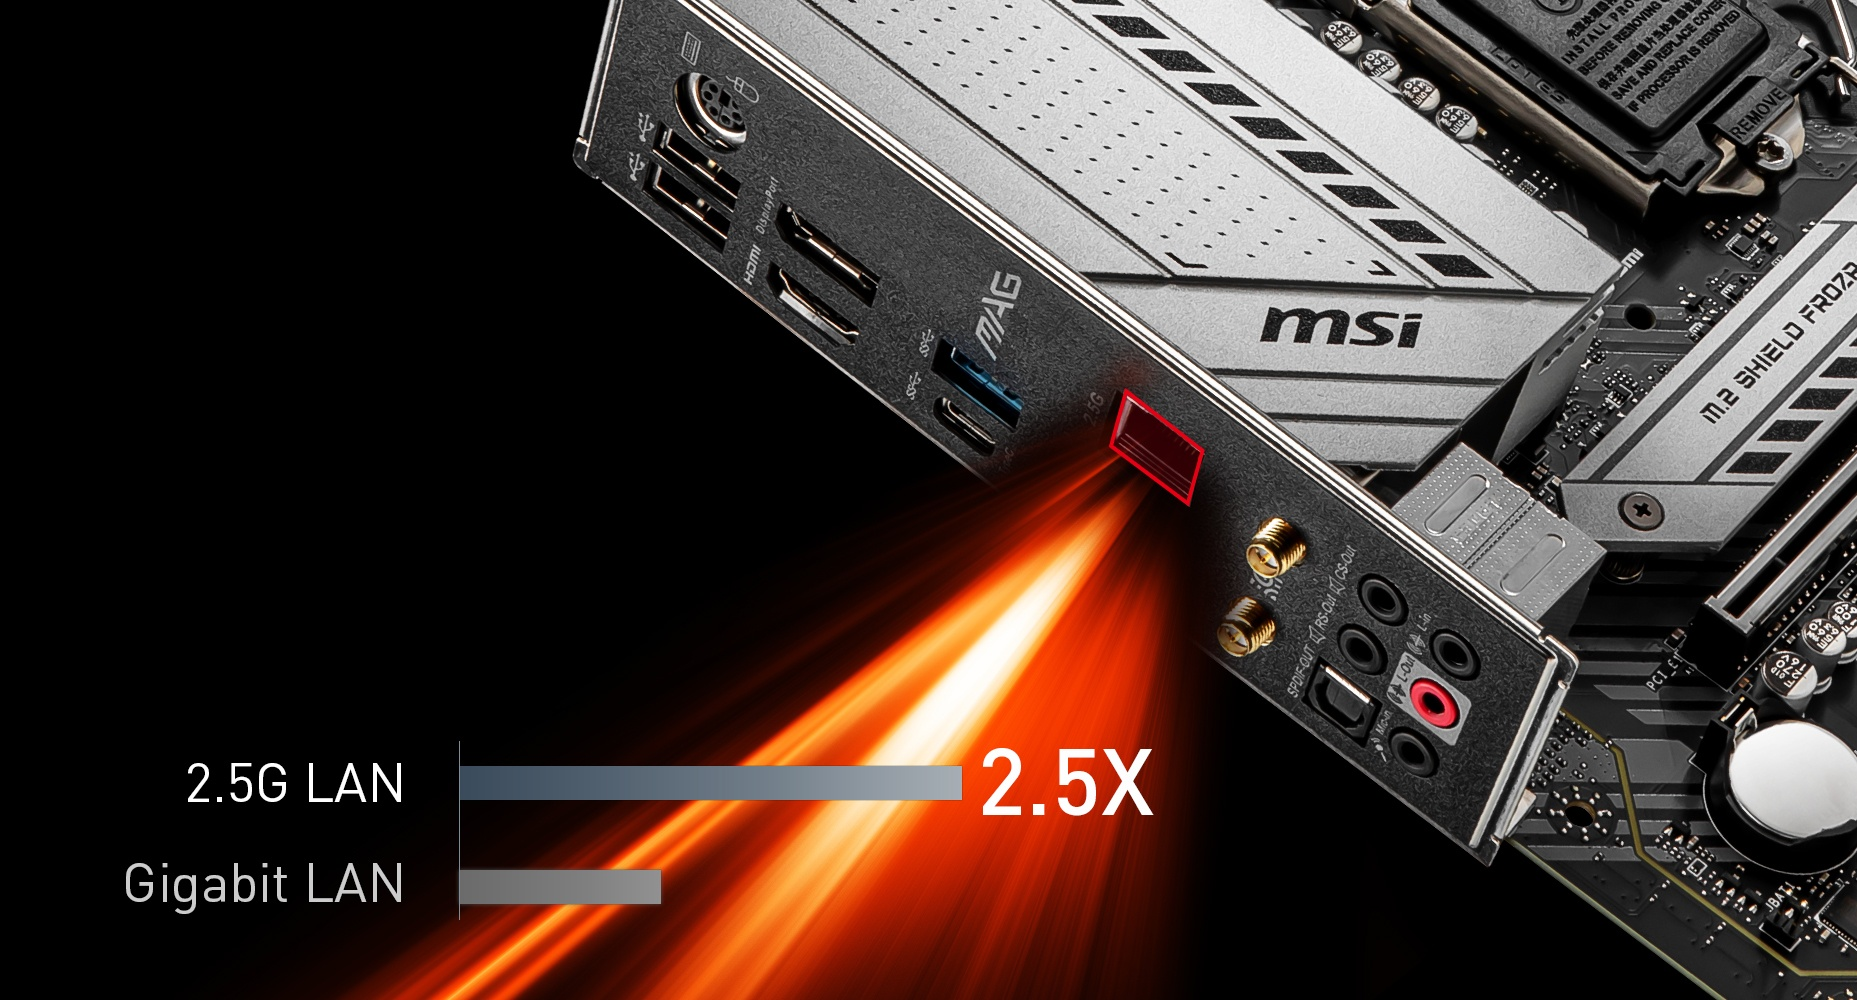 MSI MAG B460M MORTAR WIFI MAXIMIUM DATA TRANSFER WITH 2.5G LAN